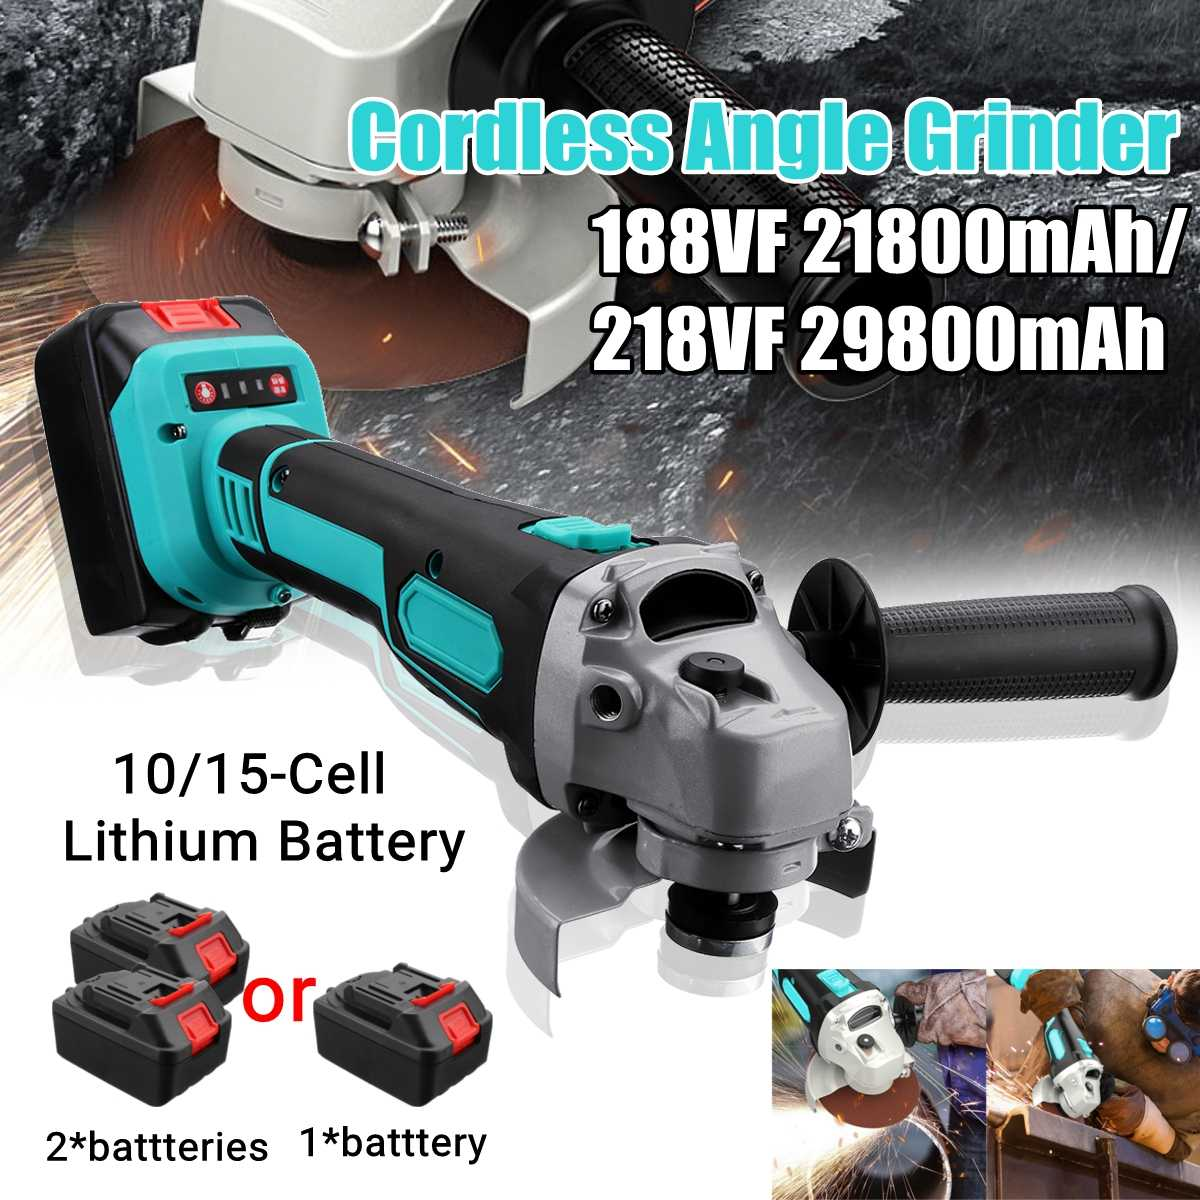 188VF/218VF Brushless Cordless Angle Grinder Electric Power Polishing Cutting W/ 1 or 2 Li-ion Battery